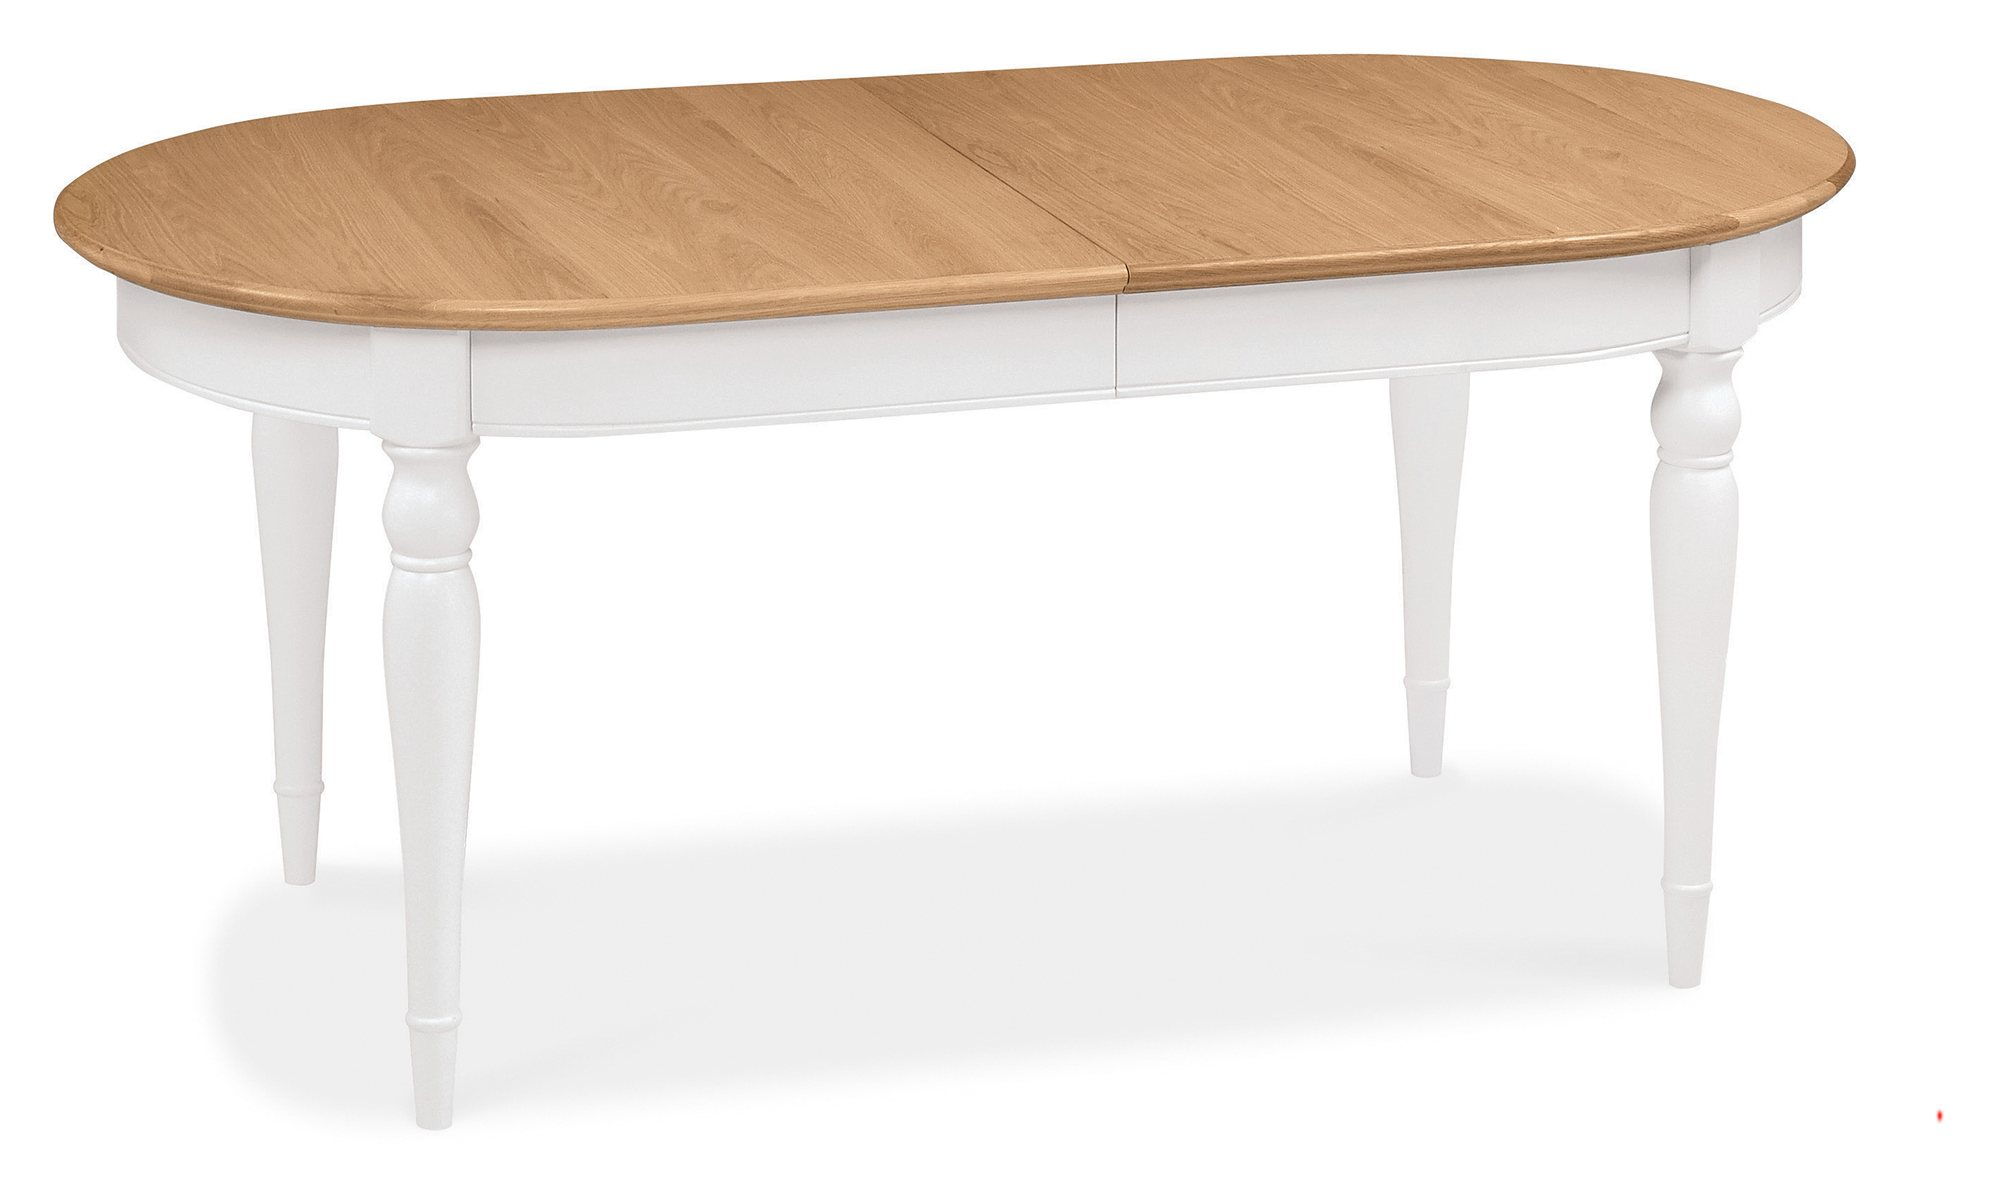 KYRA LARGE DINING TABLE CLOSED - L181cm x D97cm x H77cm